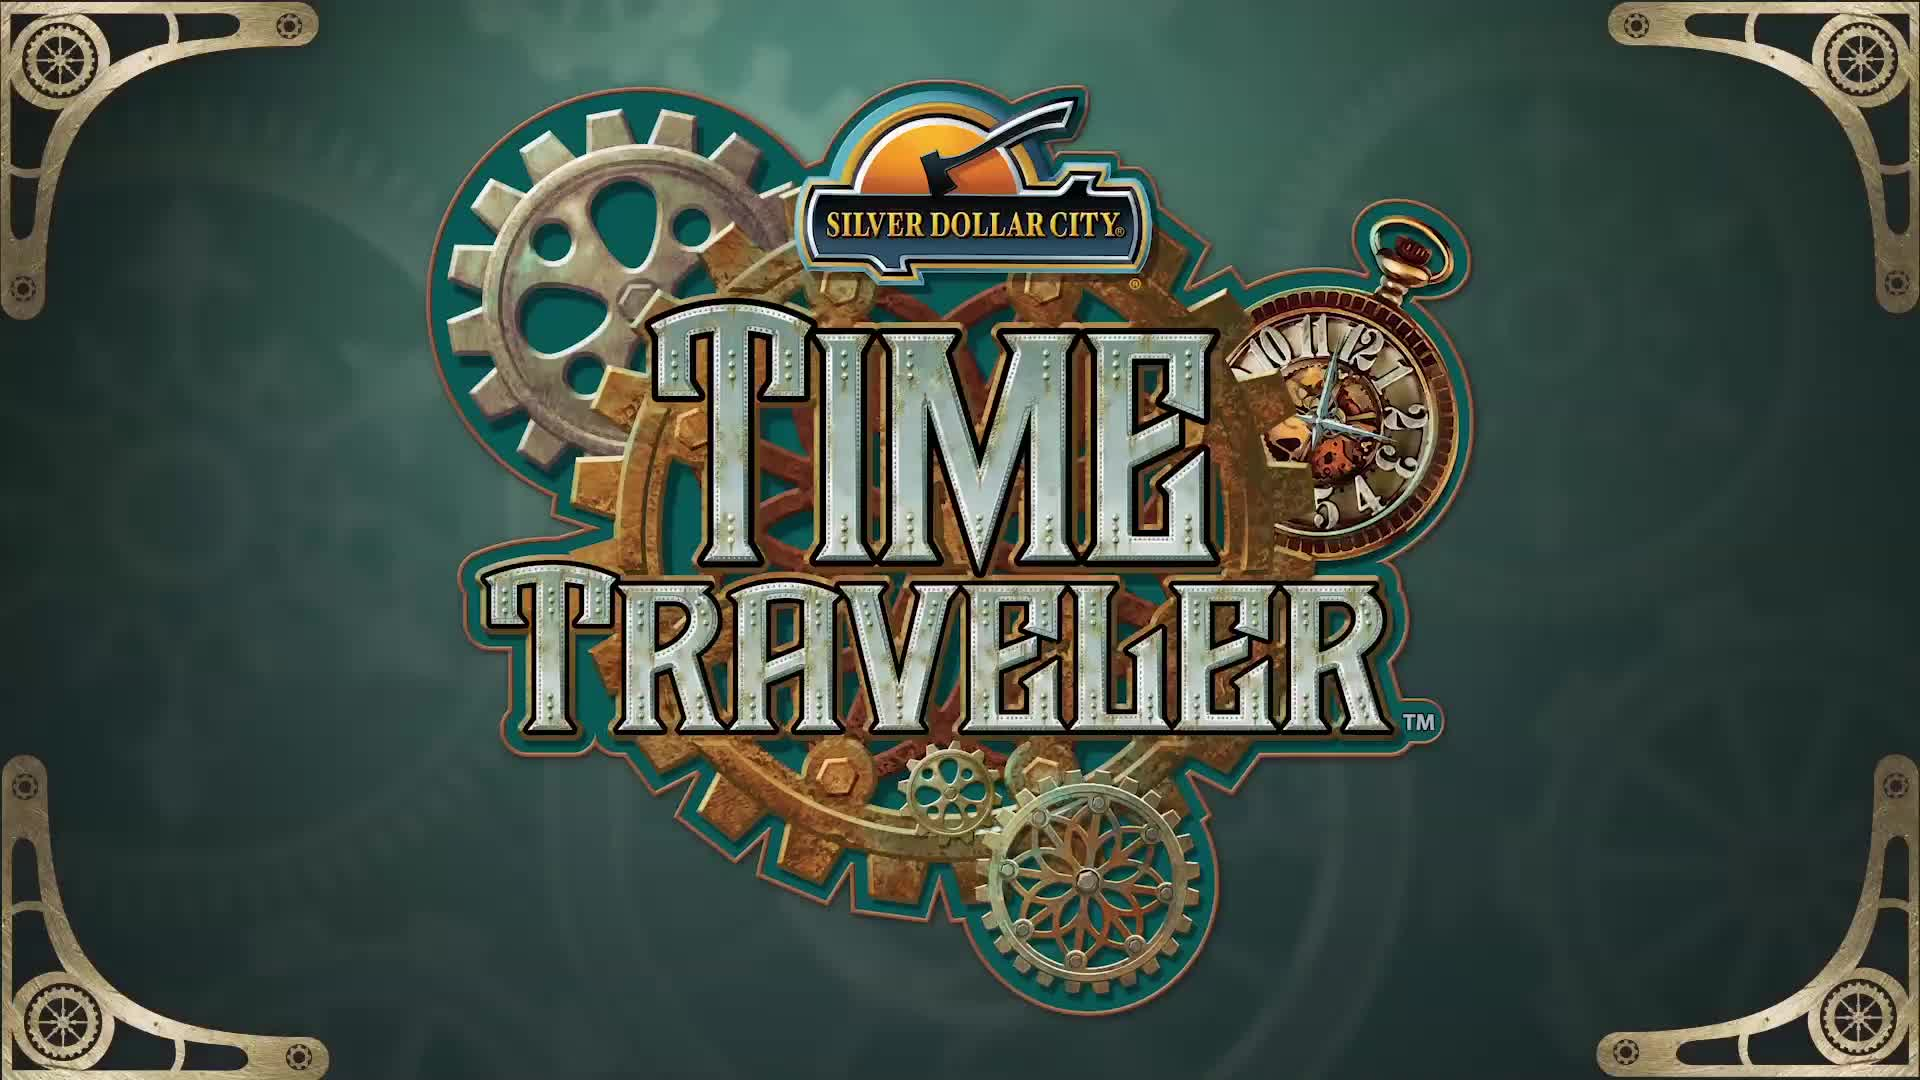 Ride animation for  Silver Dollar City's Time Traveler, a revolutionary roller coaster announced today, on National Roller Coaster Day. The ride will open Spring 2018 at the Branson, Missouri theme park.